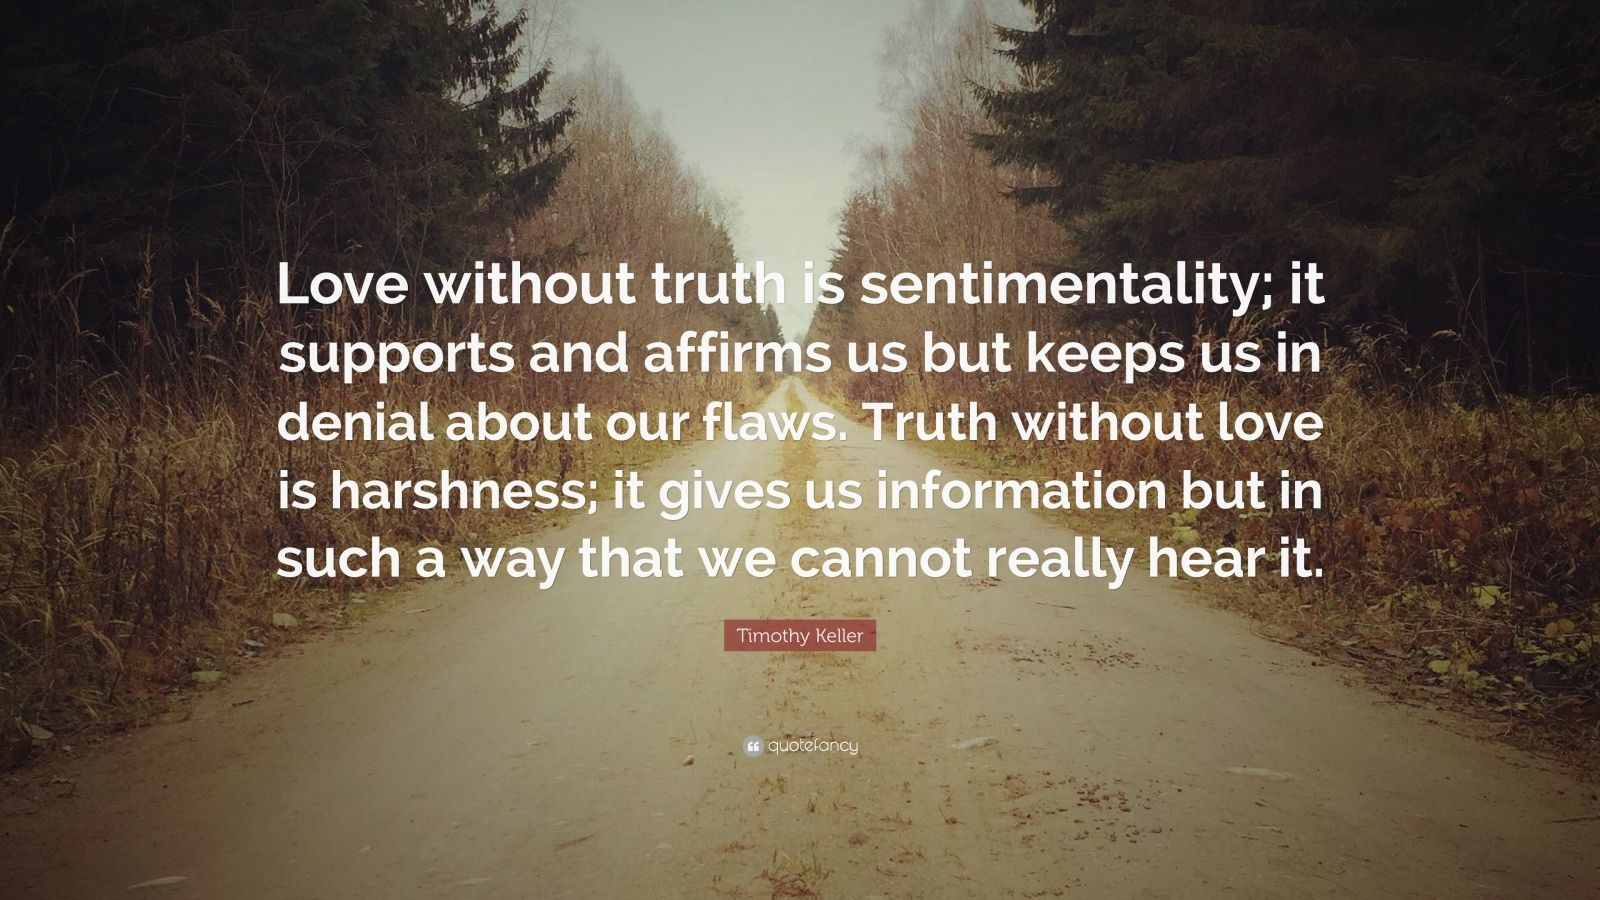 "Timothy Keller Quote: ""Love without truth is sentimentality; it supports and affirms us but keeps us in denial about our flaws. Truth without love is harshness; it gives us information but in such a way that we cannot really hear it."""